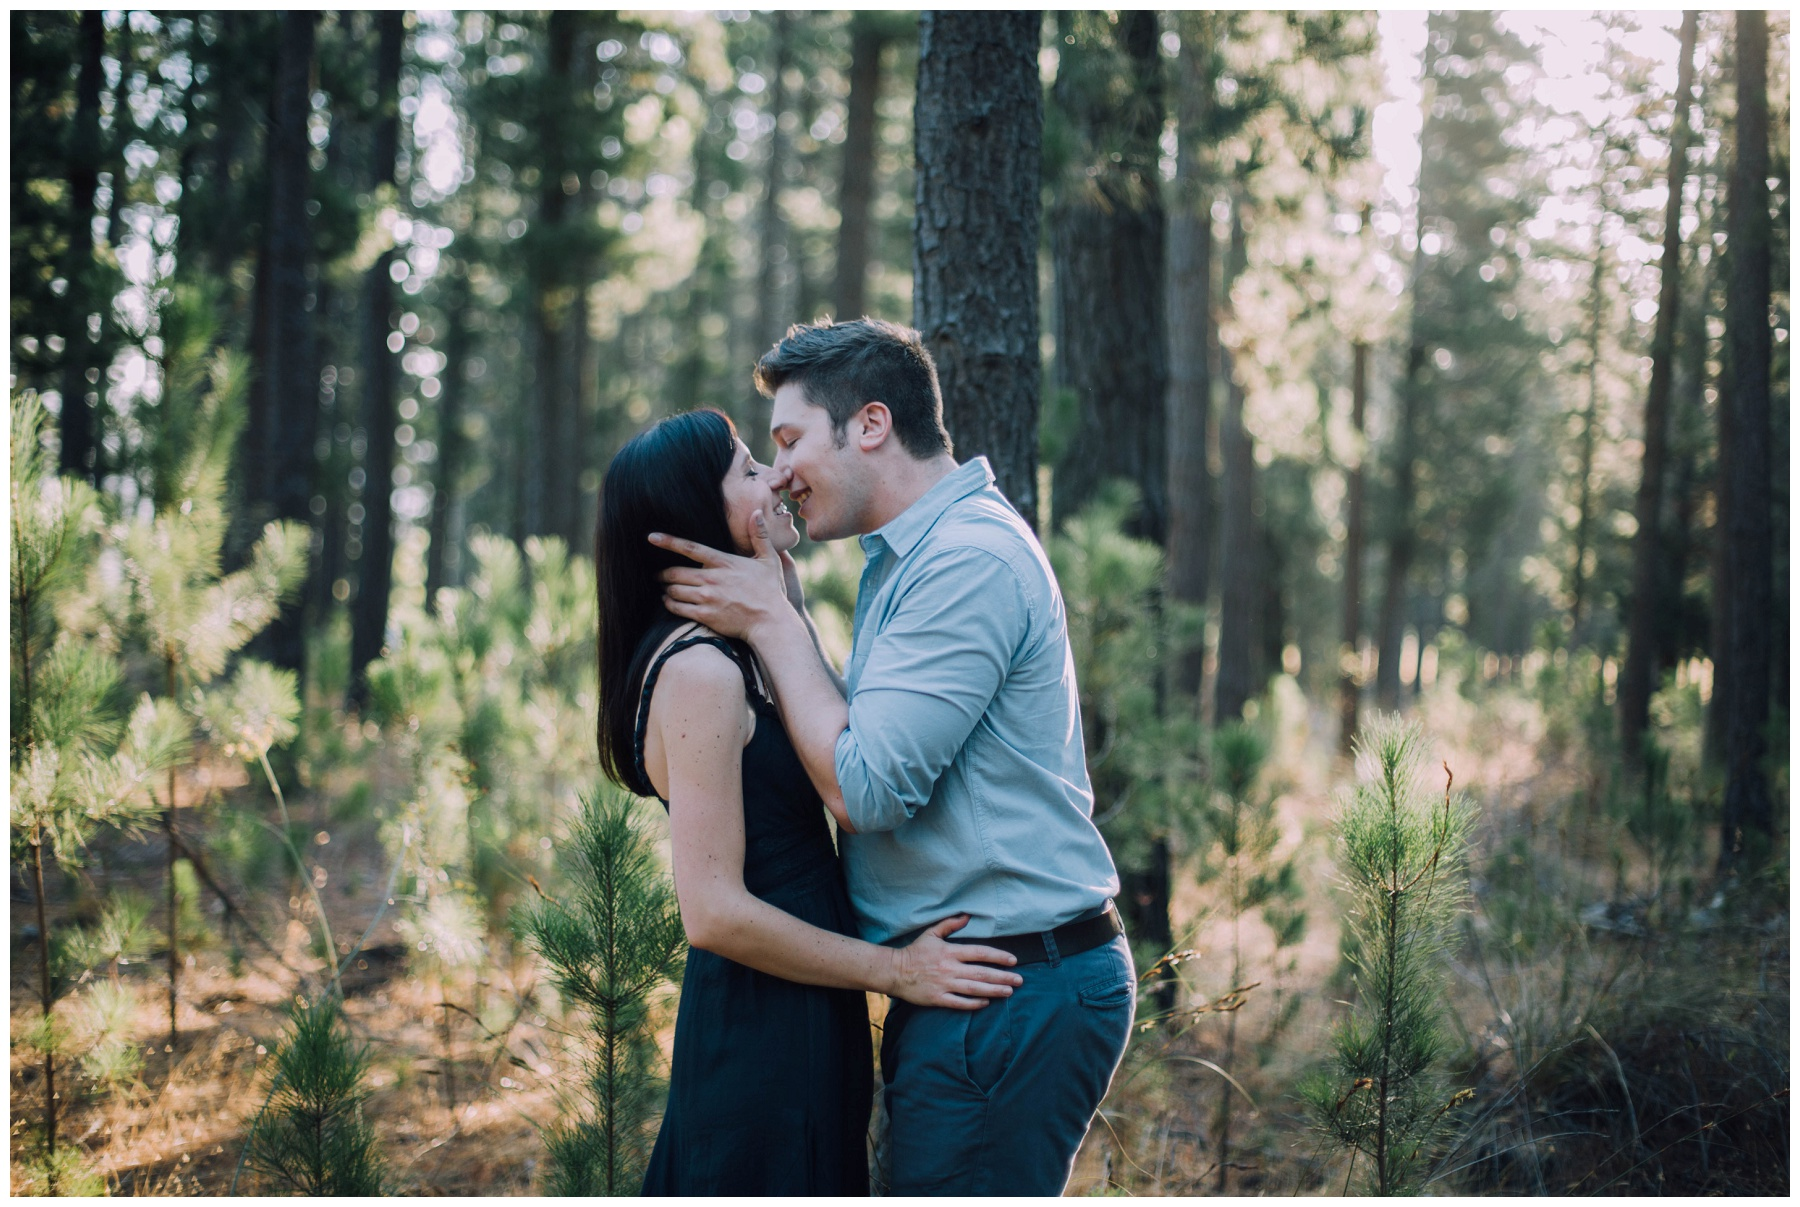 Ronel Kruger Cape Town Wedding and Lifestyle Photographer_1515.jpg